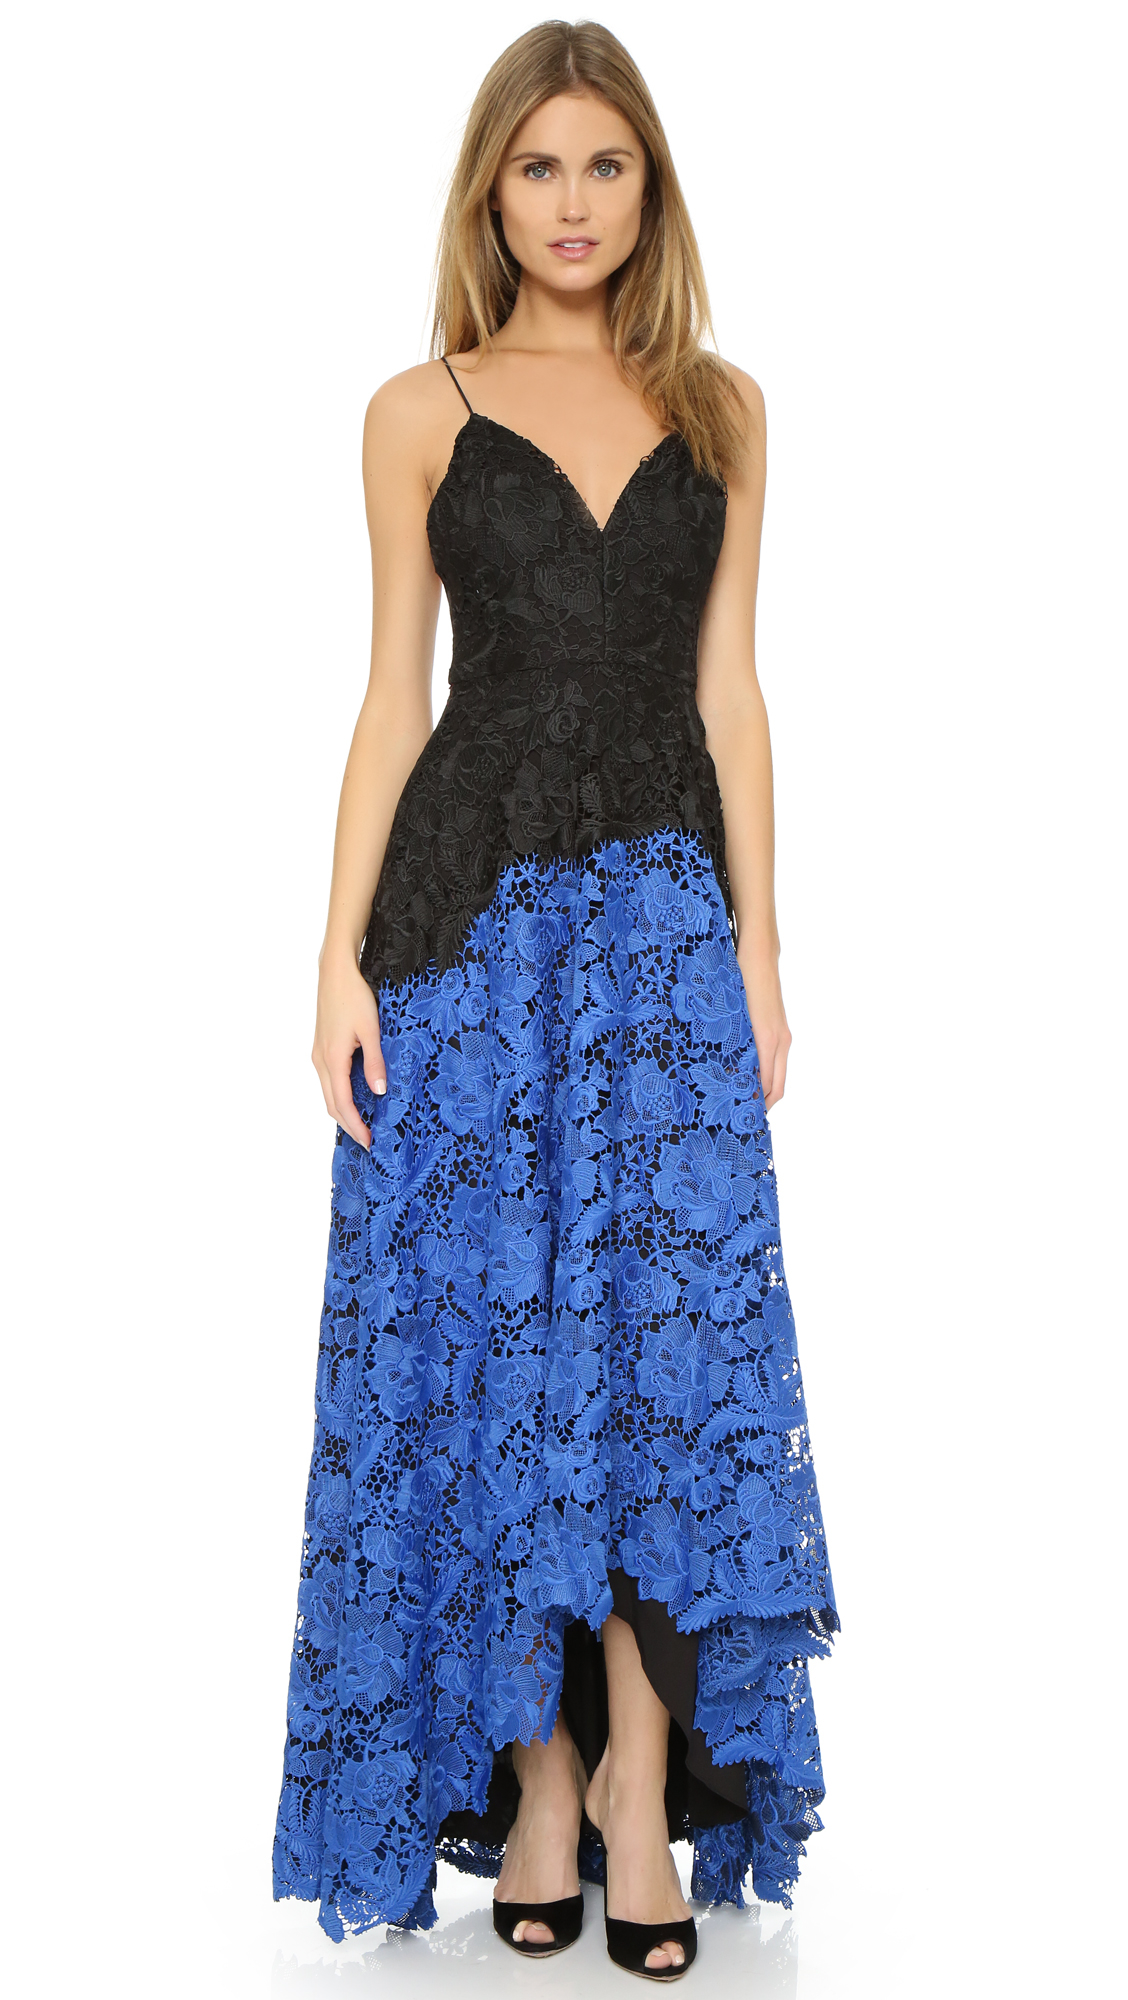 Badgley Mischka Two Tone Lace Gown - Black/blue in Blue - Lyst